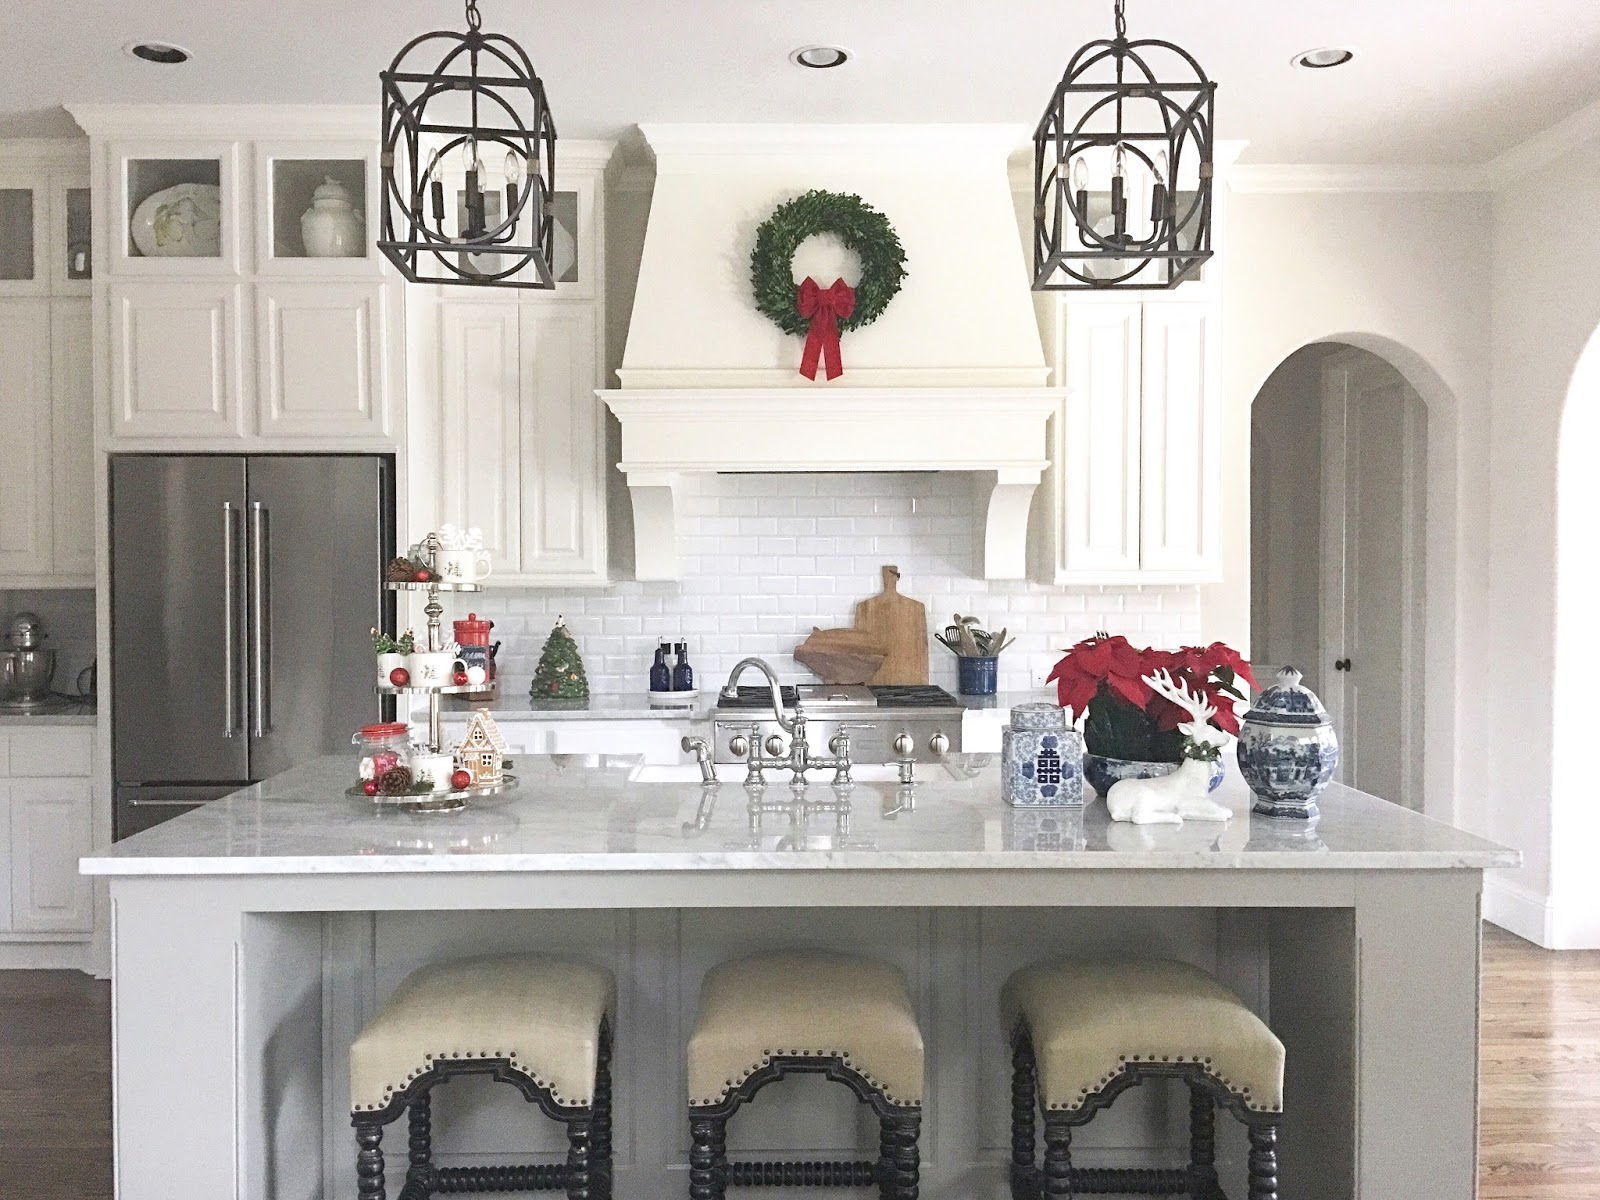 Classic Style Home: Christmas Kitchen and Hot Cocoa Bar